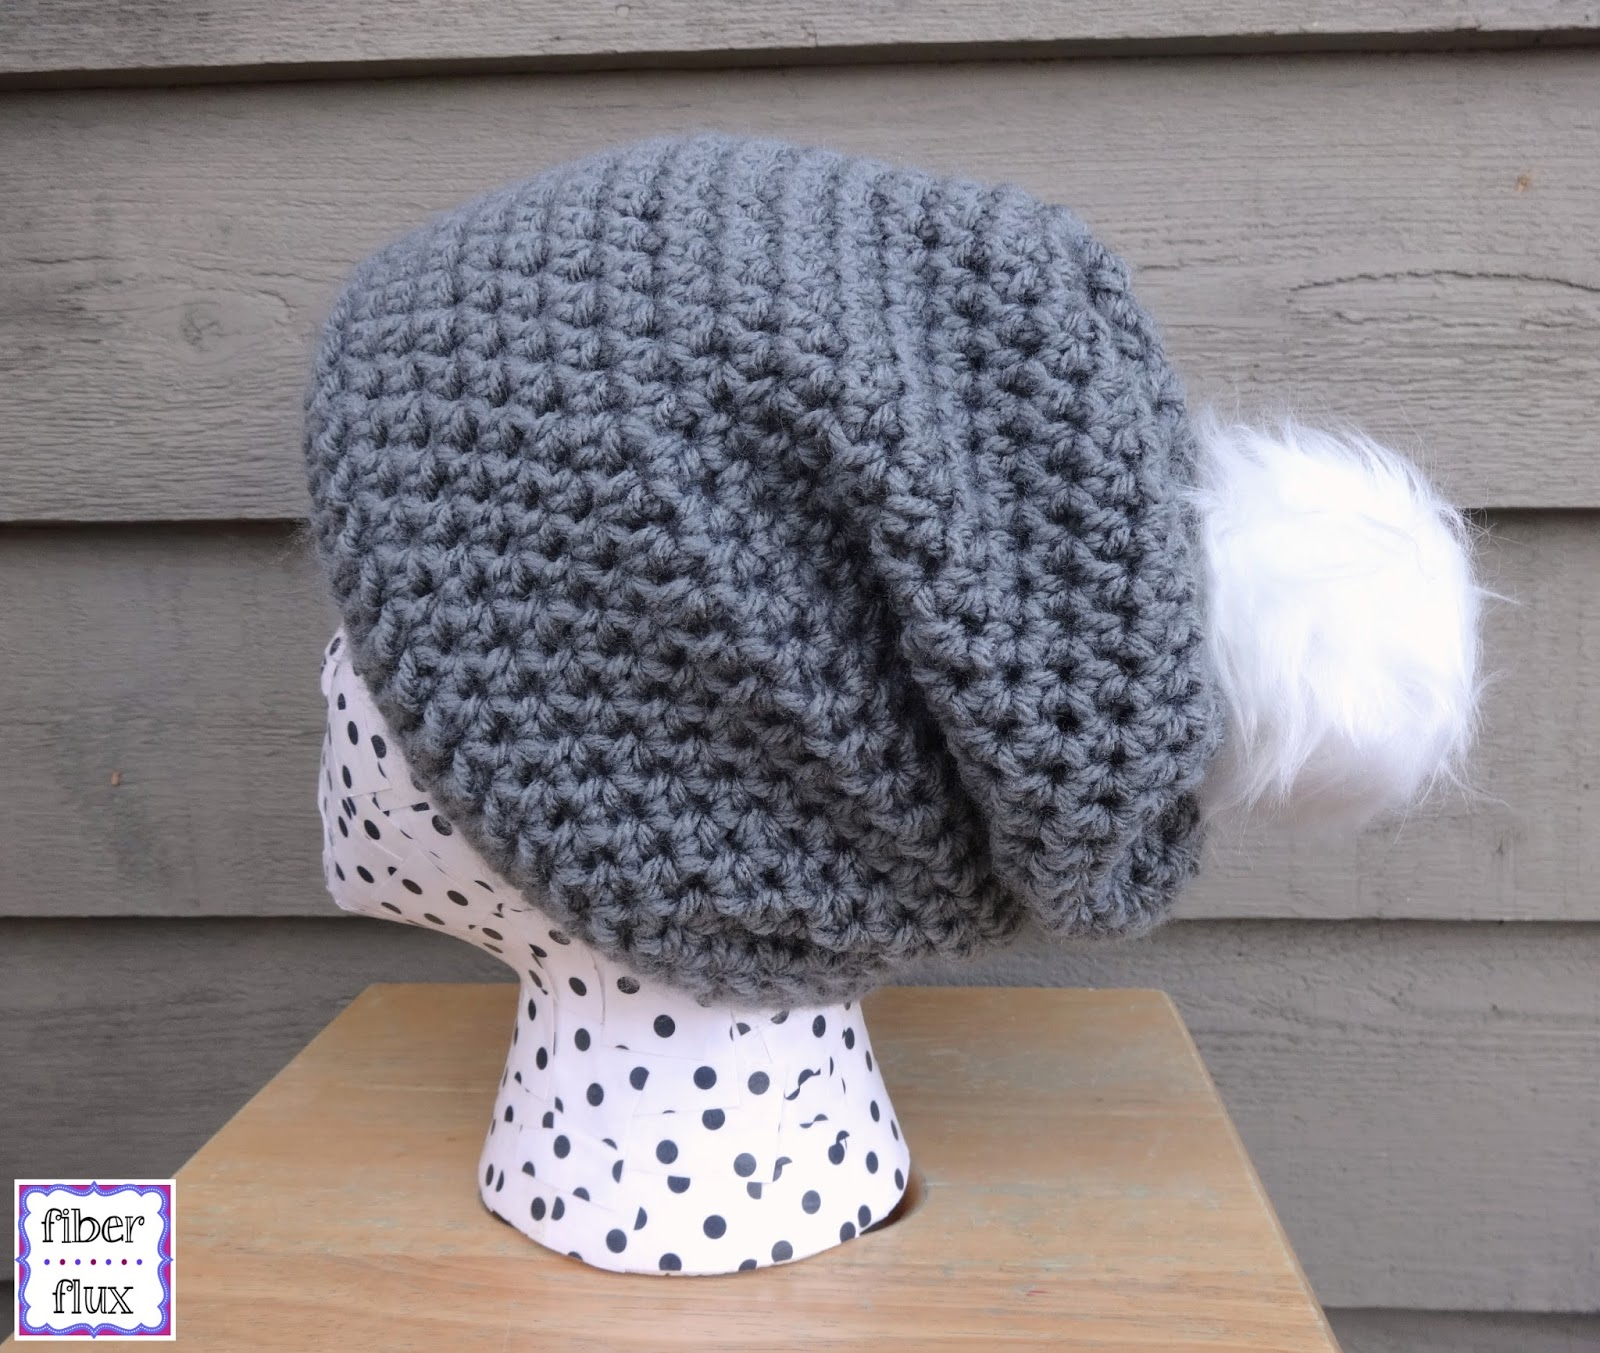 4dbc89fd7f9 Fiber Flux  Free Crochet Pattern...Cottontail Slouch!